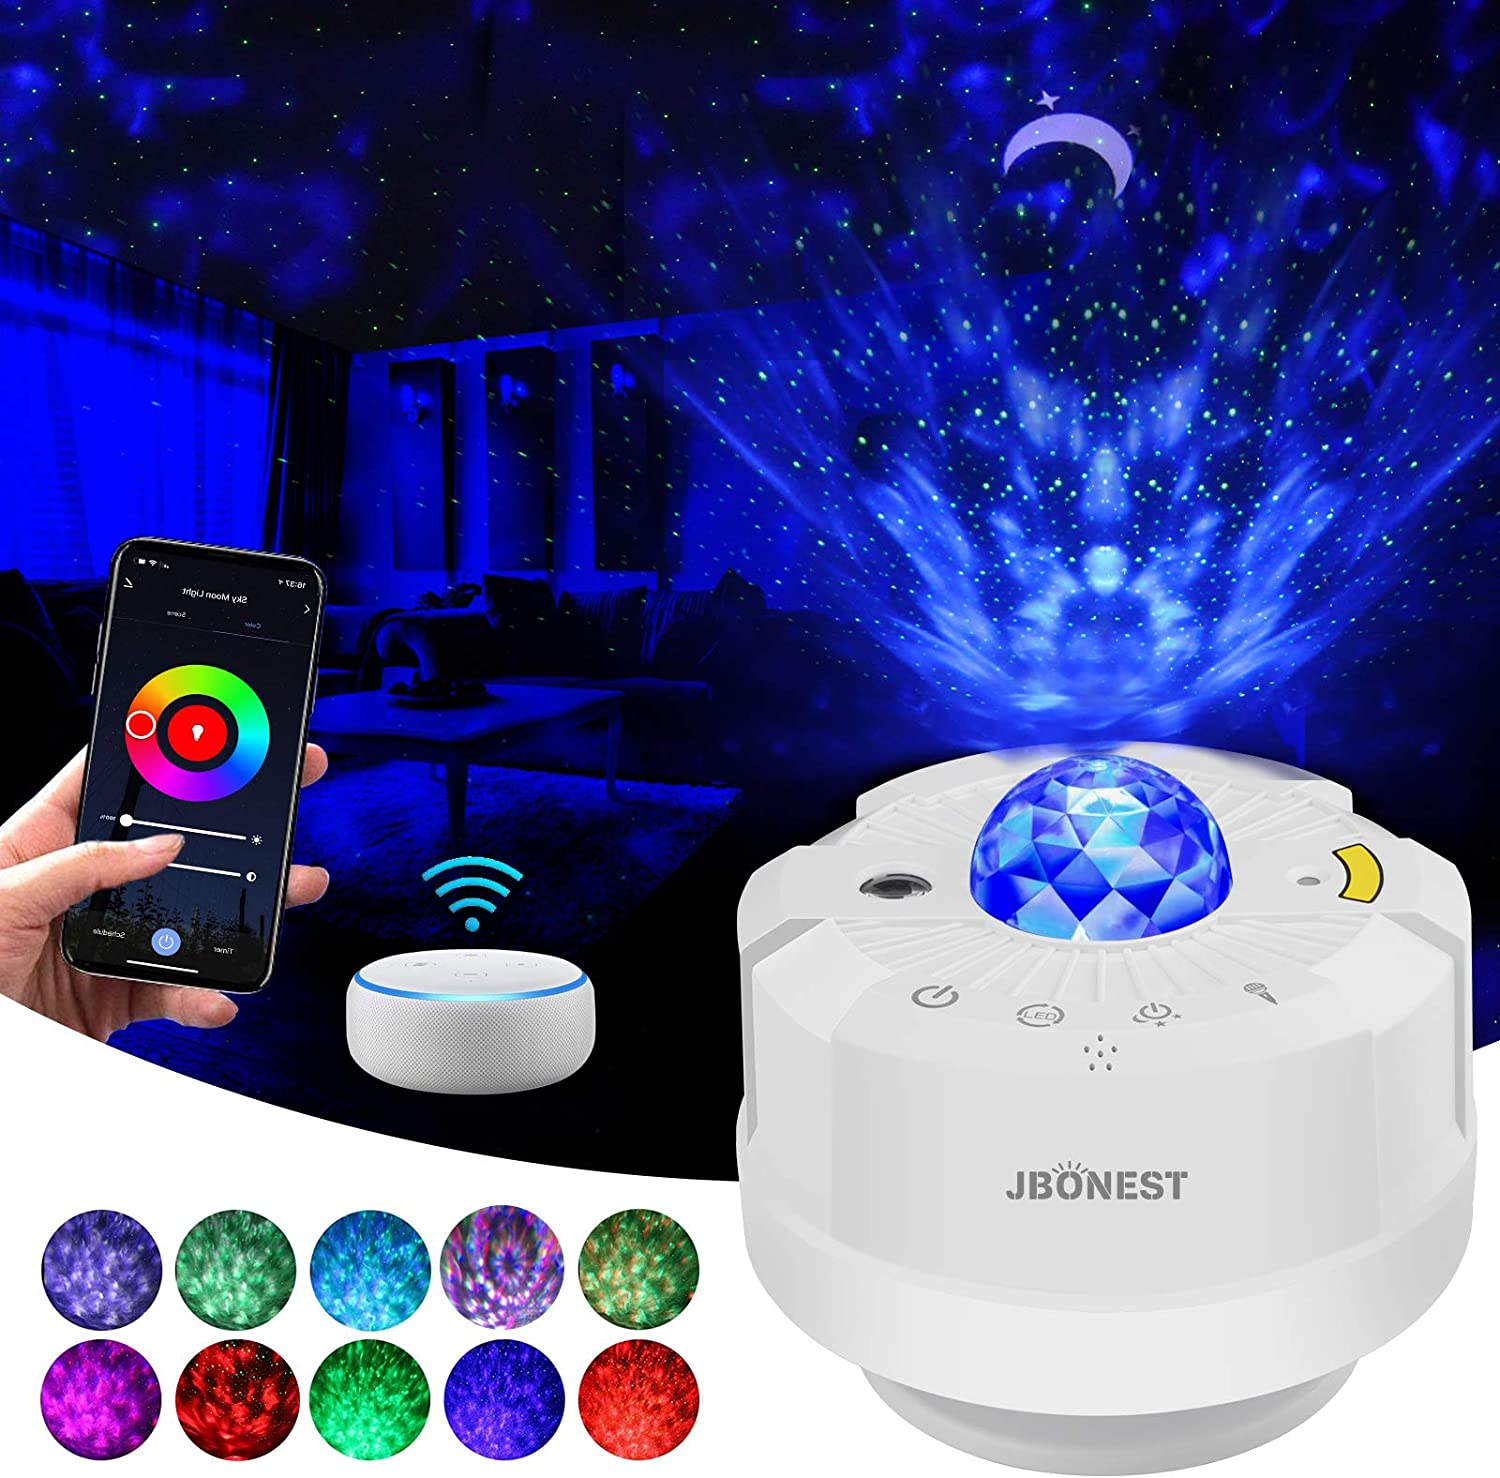 Galaxy Star Projector,Smart Night Light Projector,Nebula Cloud/Ocean Wave,Auto Timer,Sound Control,Manual & Wi-Fi Mode,for Kids Bedroom,Home Theater Lighting,Work with Alexa & Google Assistant